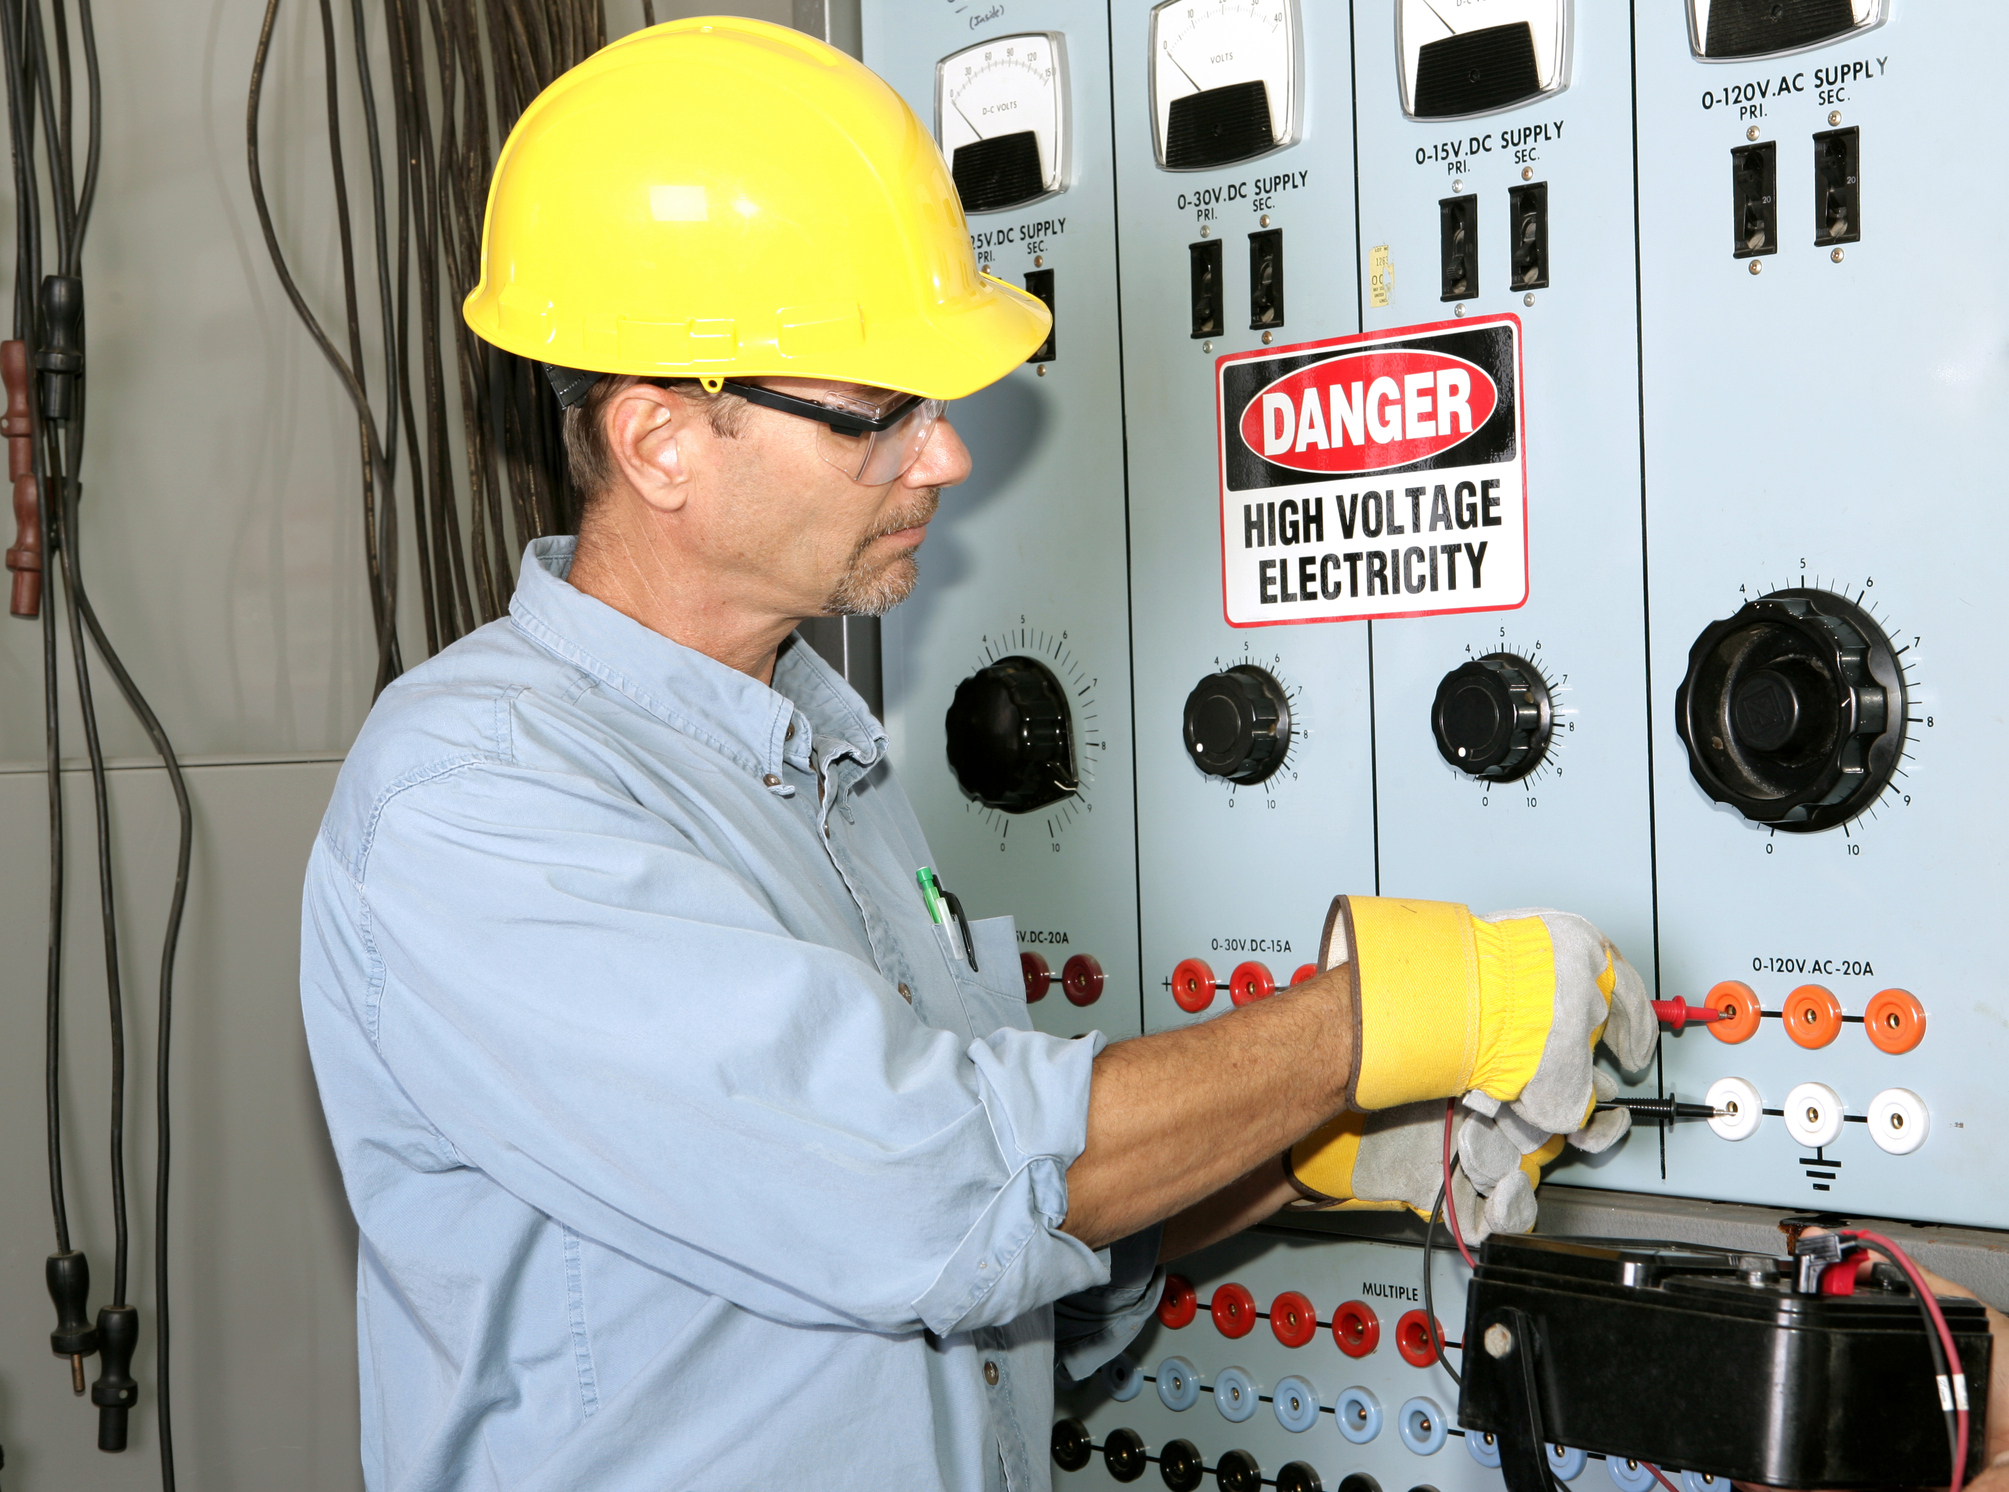 - You're invited to register for a special electrical safety training class sponsored by Design Electric Inc. This training will be provided by EI Training Group and cover National Fire Protection Agency (NFPA) 70E 2015 guidelines.